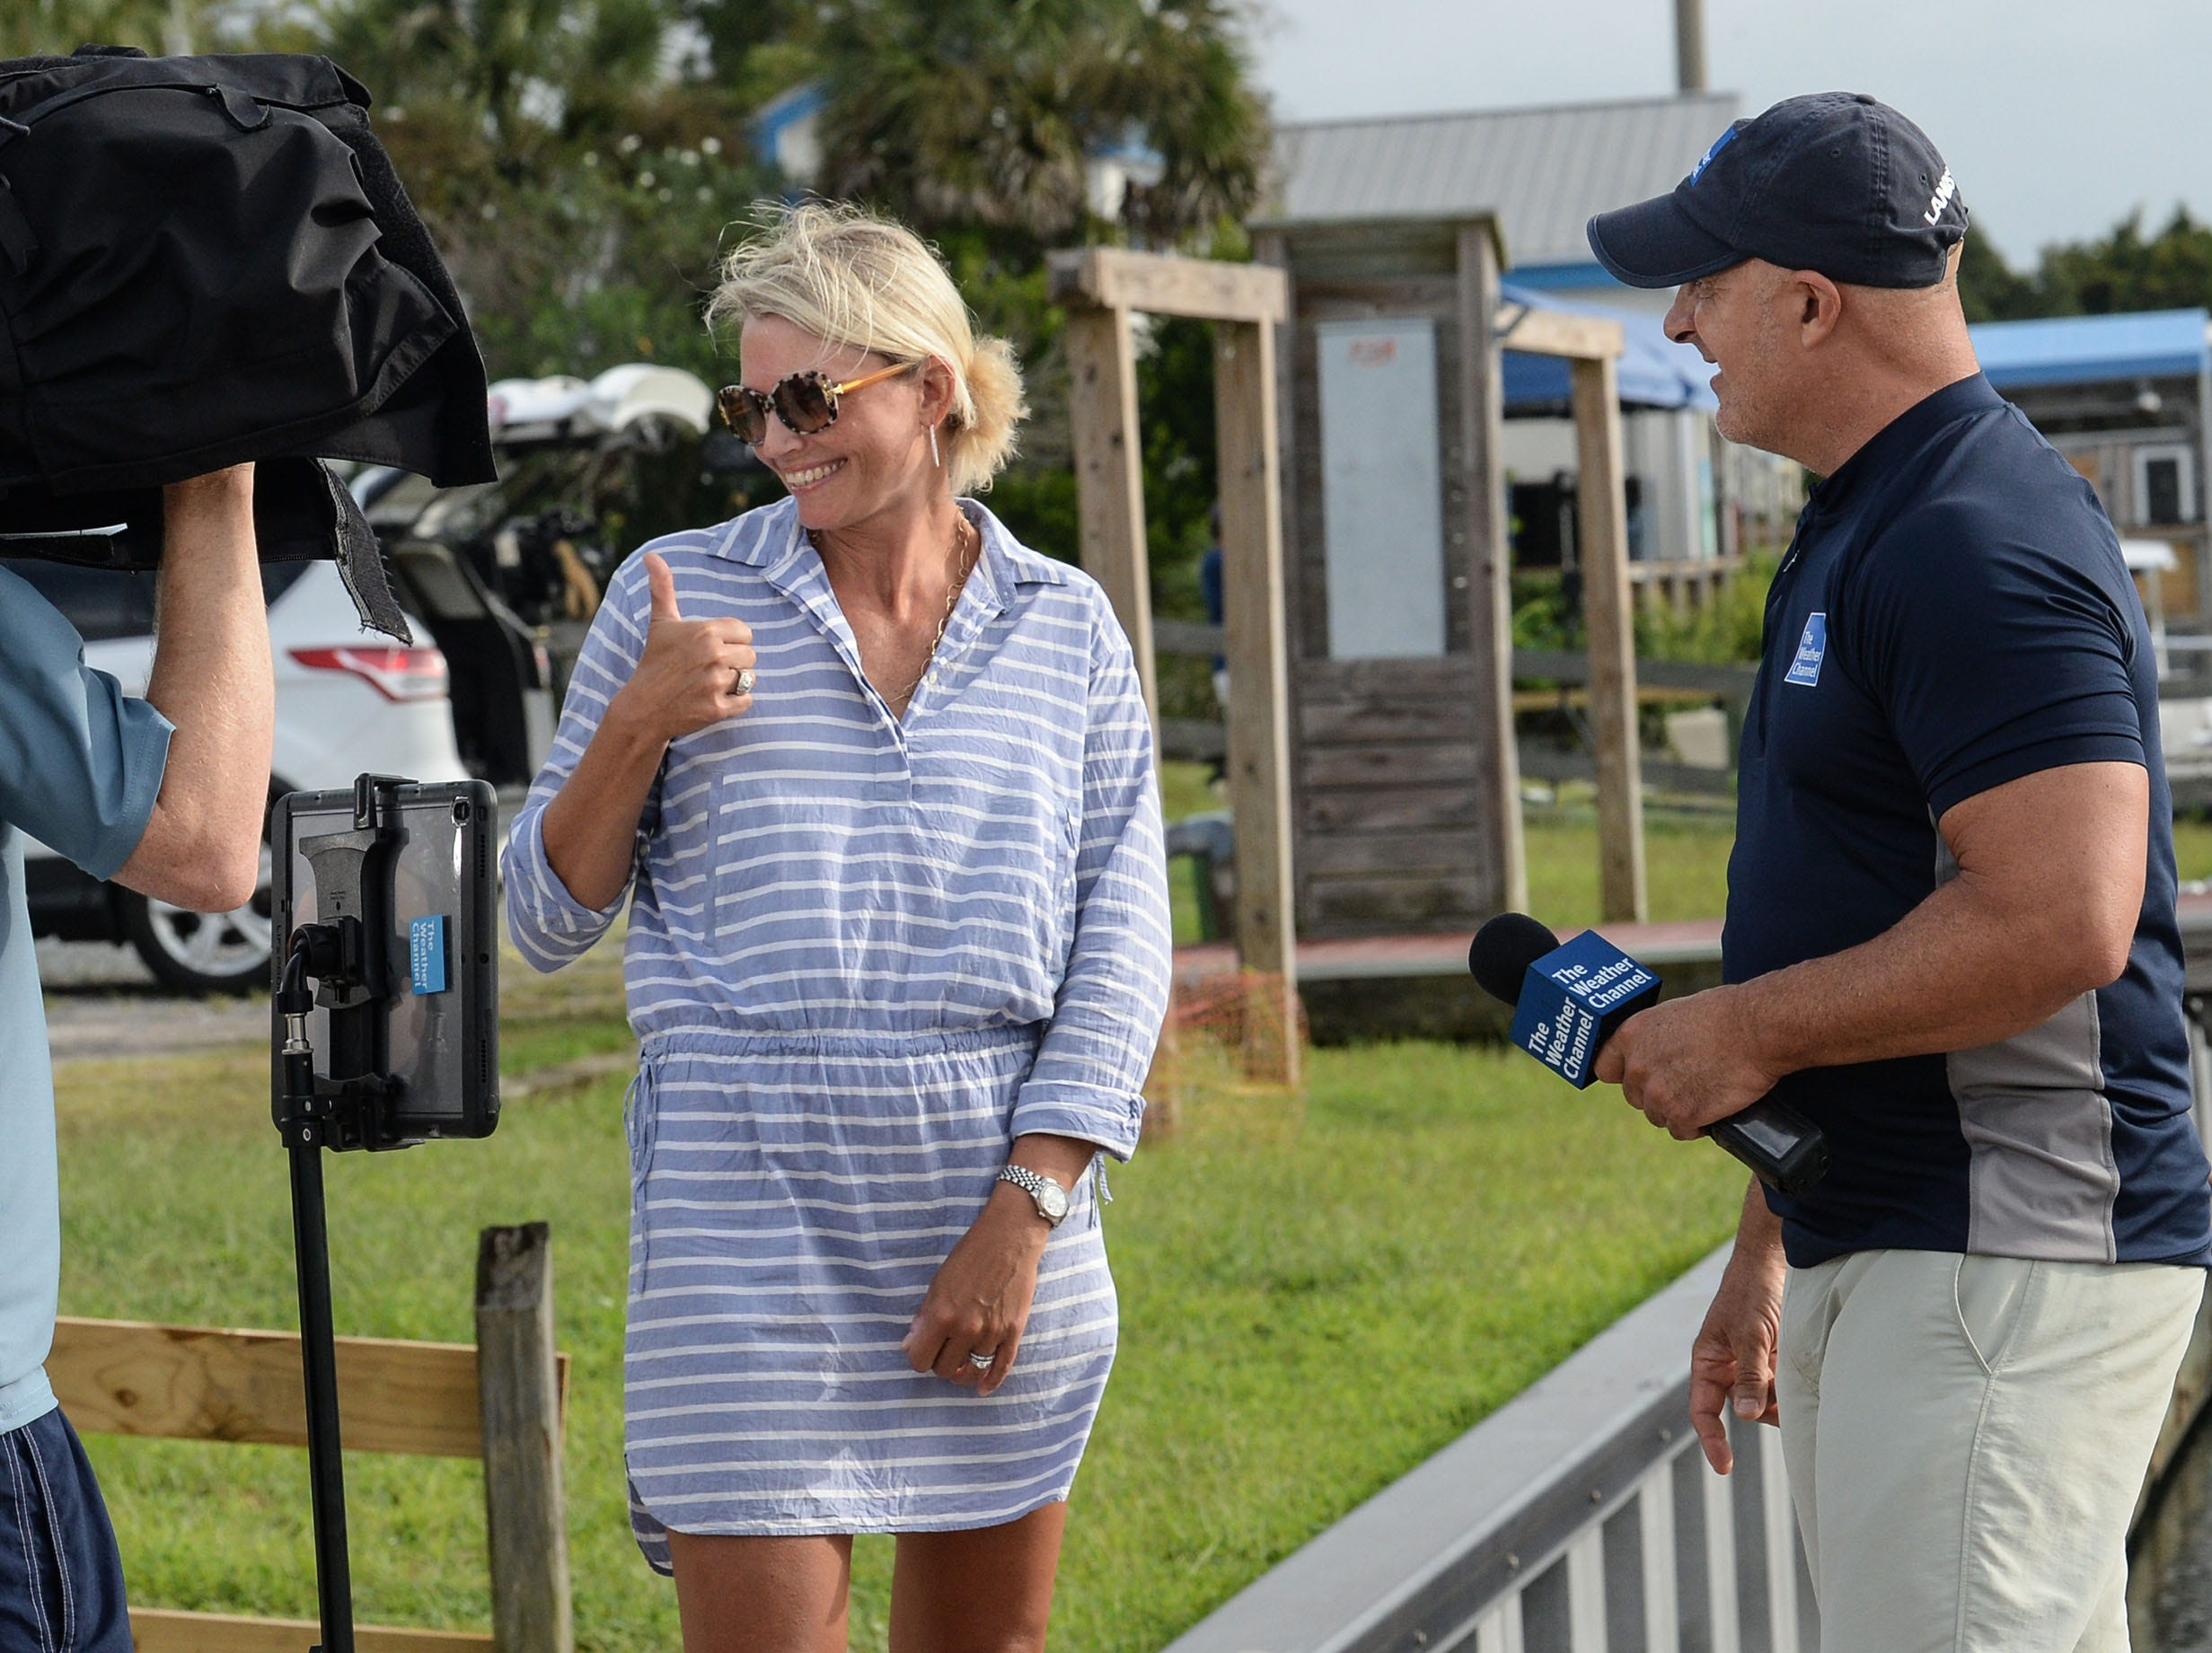 Amy Neathery, left of Wilmington, N.C. gives a thumbs up to family watcher her get interviewed by Jim Cantore of The Weather Channel, before Hurricane Florence hit on Thursday, Sept. 13, 2018.